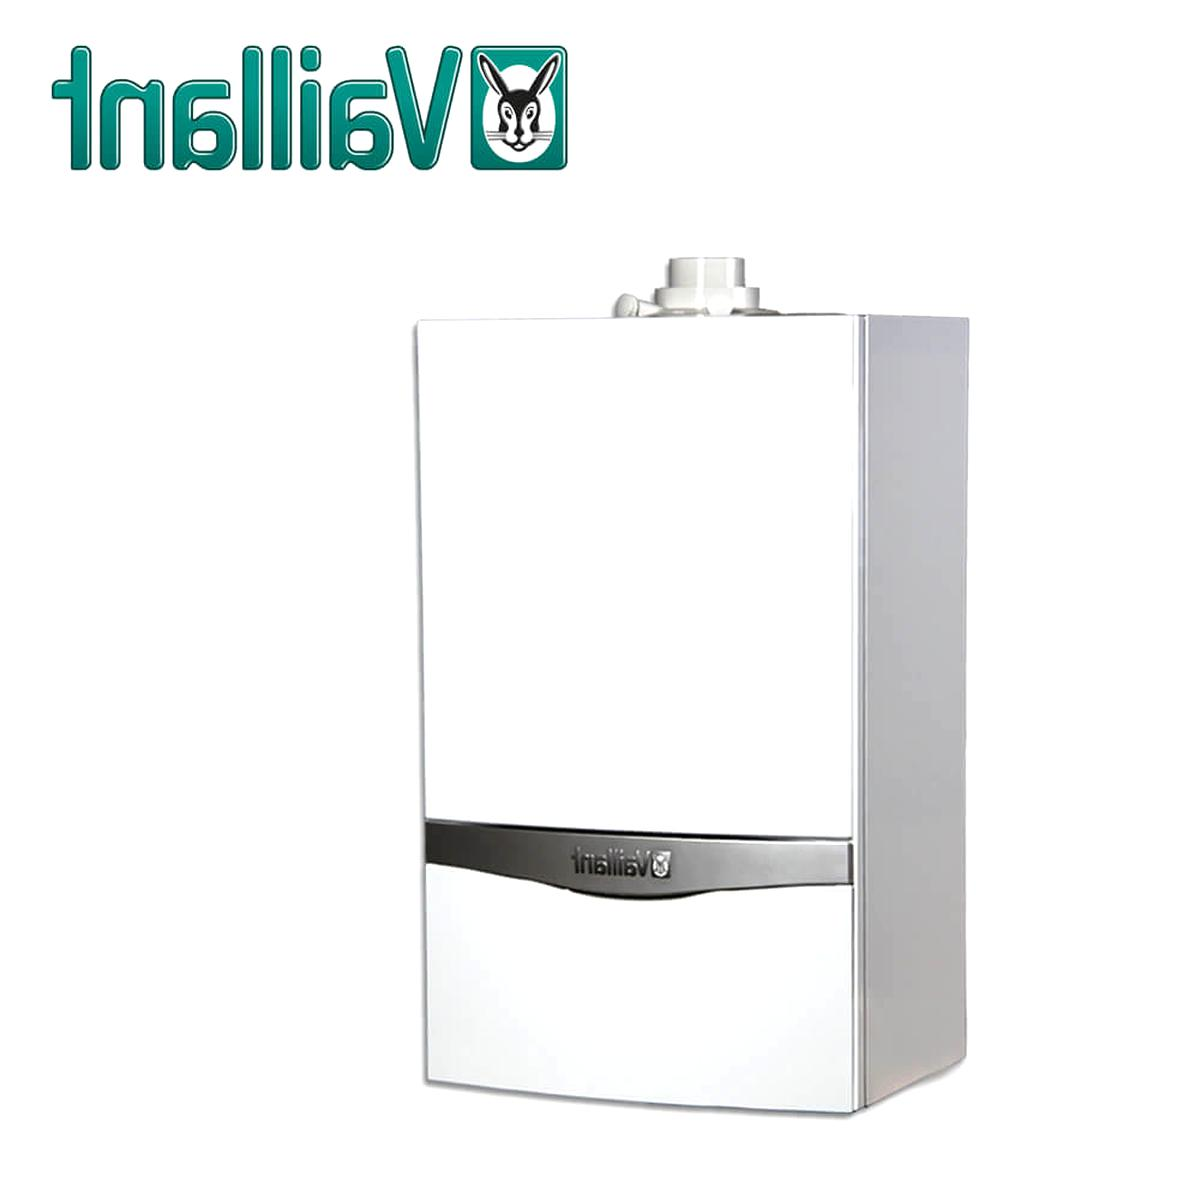 Vaillant VCW 206 5-5 Kombitherme Paket Gas Brennwerttherme Regelung Therme 20 kW